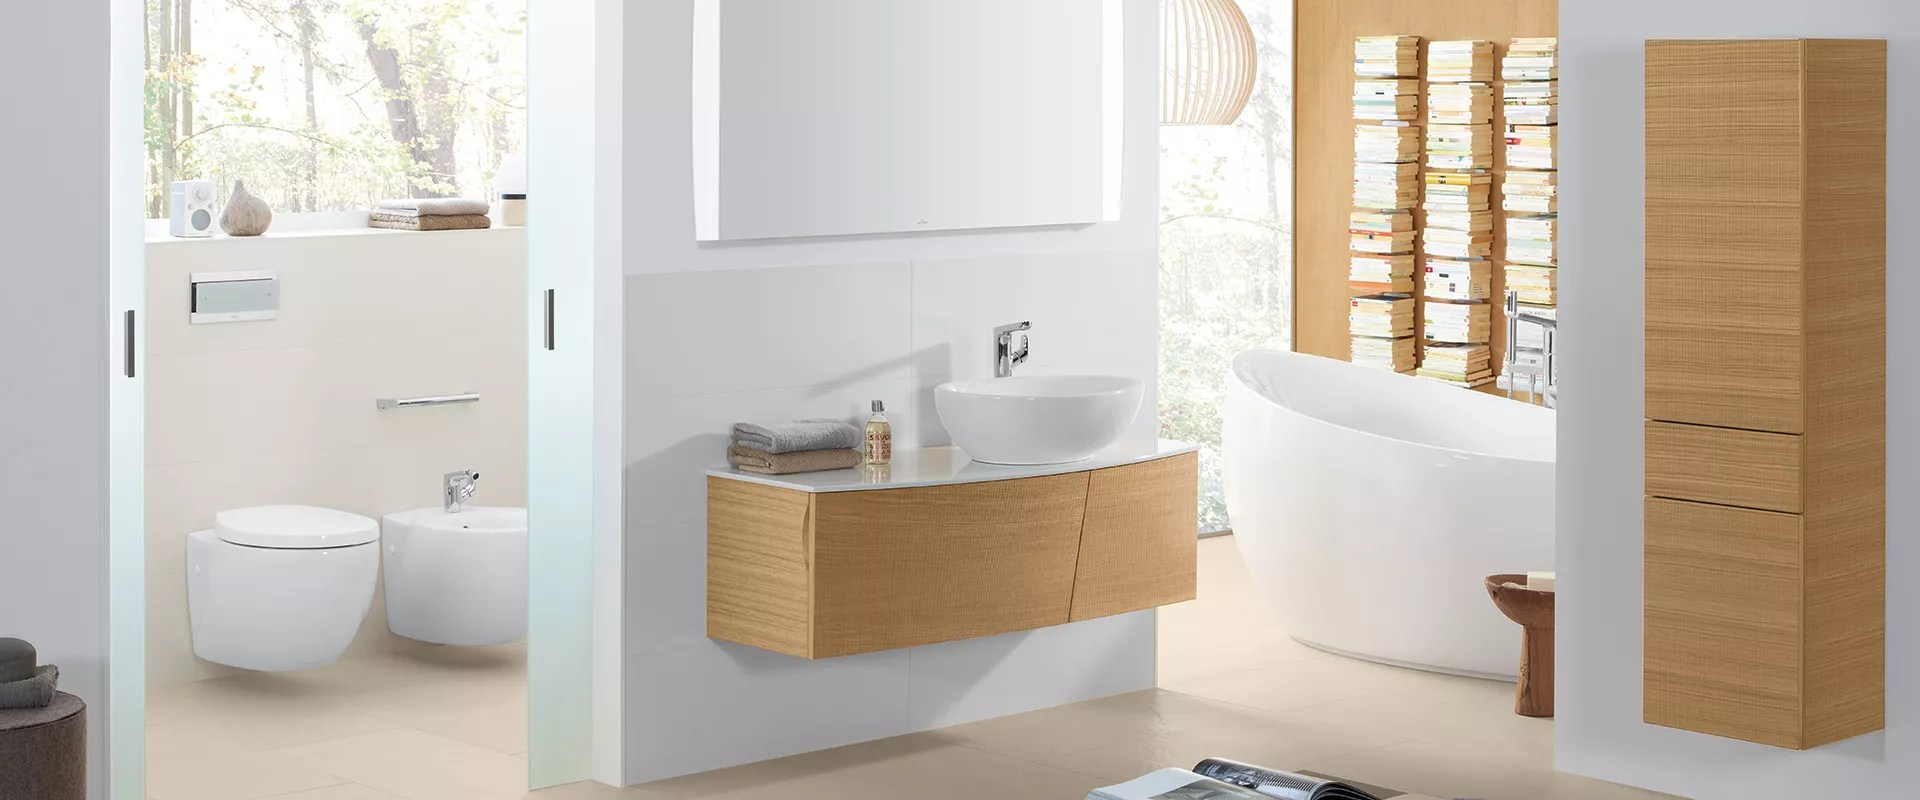 Badezimmer Top Modern Aveo New Generation Collection By Villeroy Boch Natural